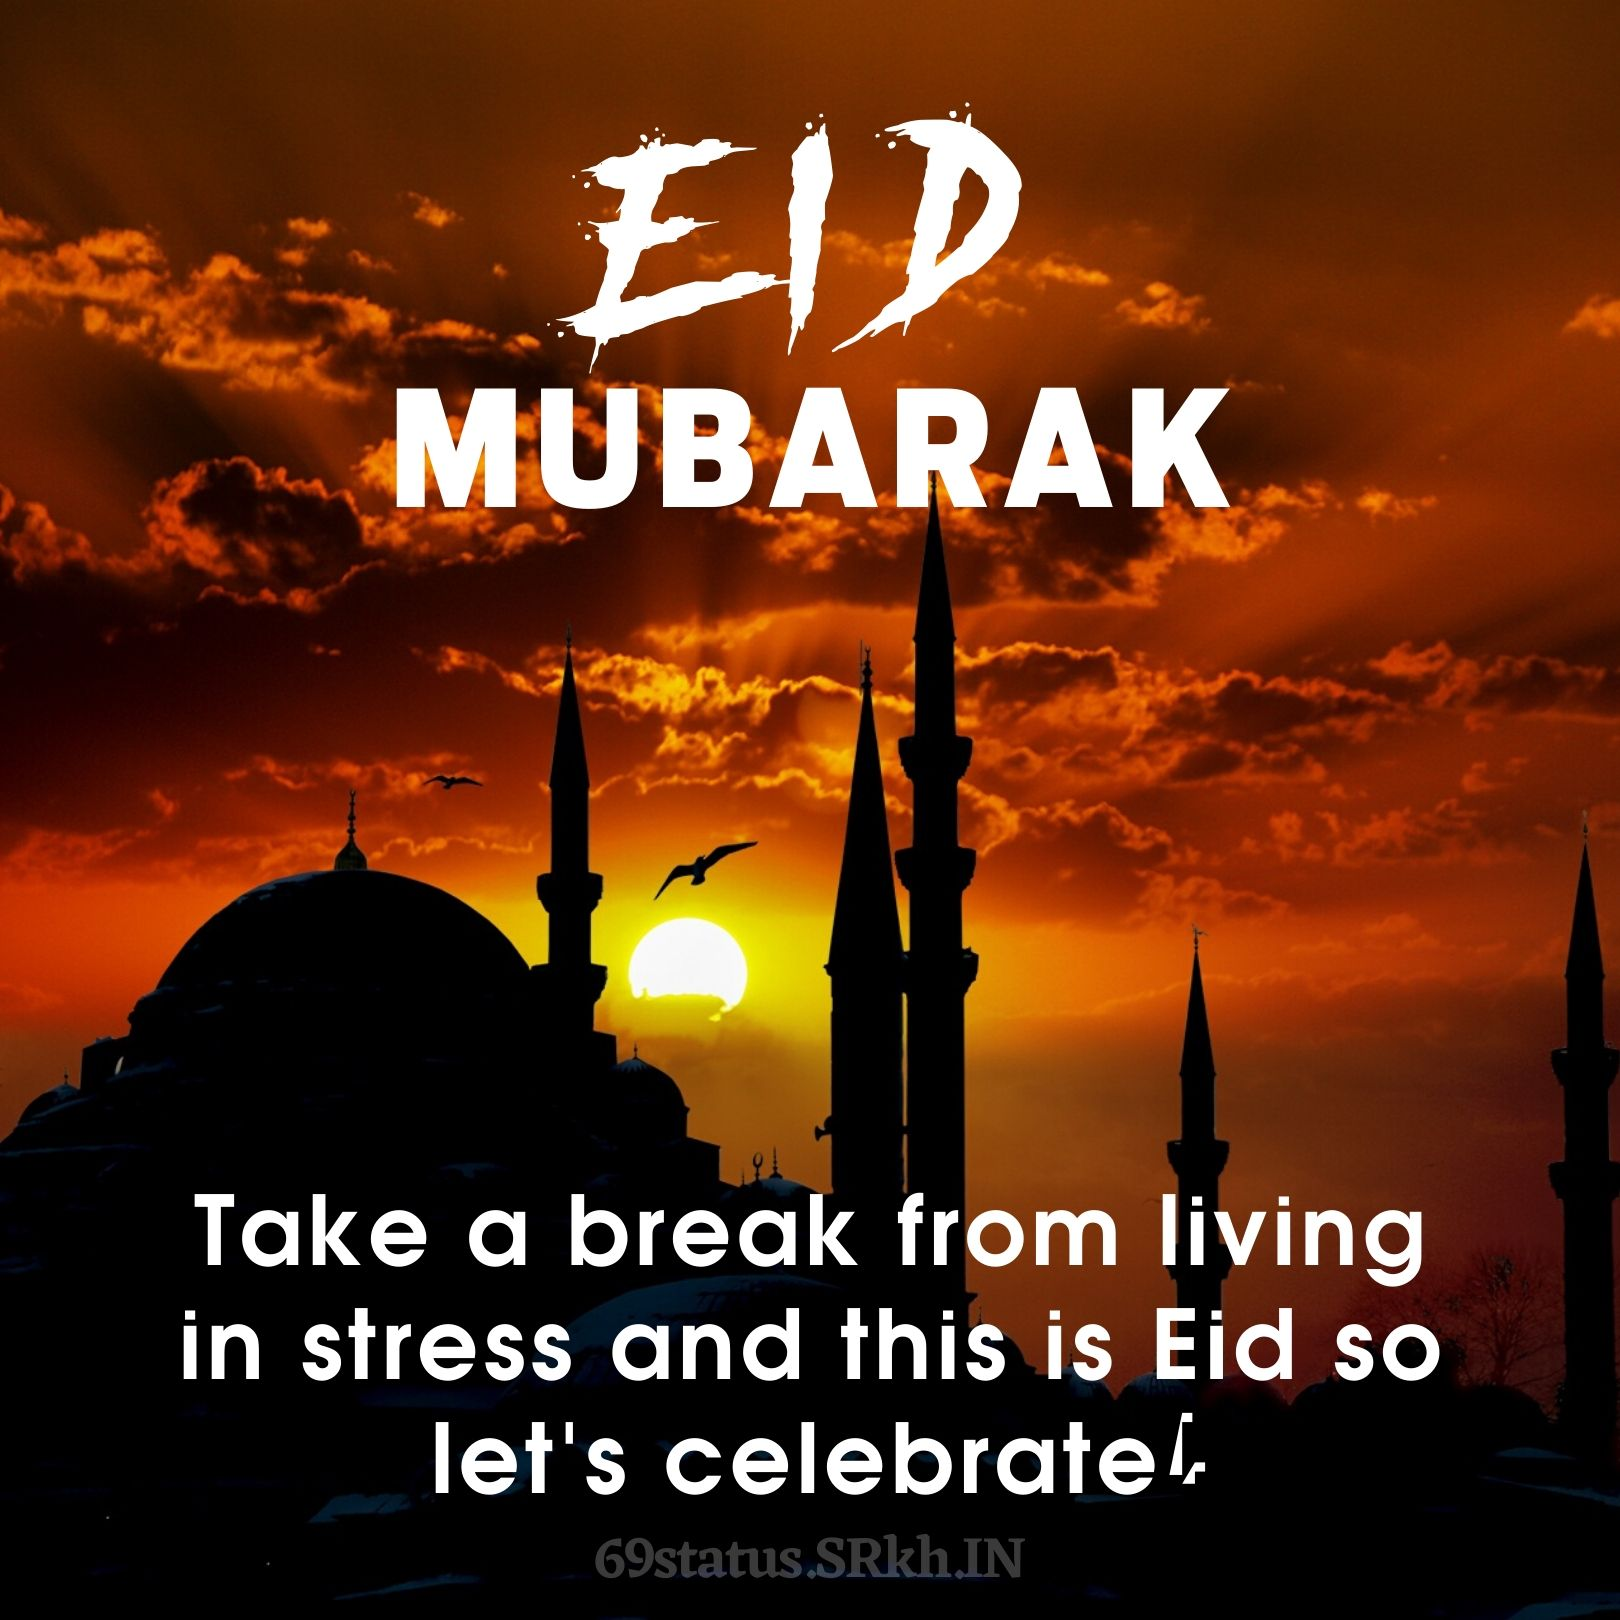 Eid Mubarak. Take a break from living in stress and this is Eid So lets celebrate full HD free download.